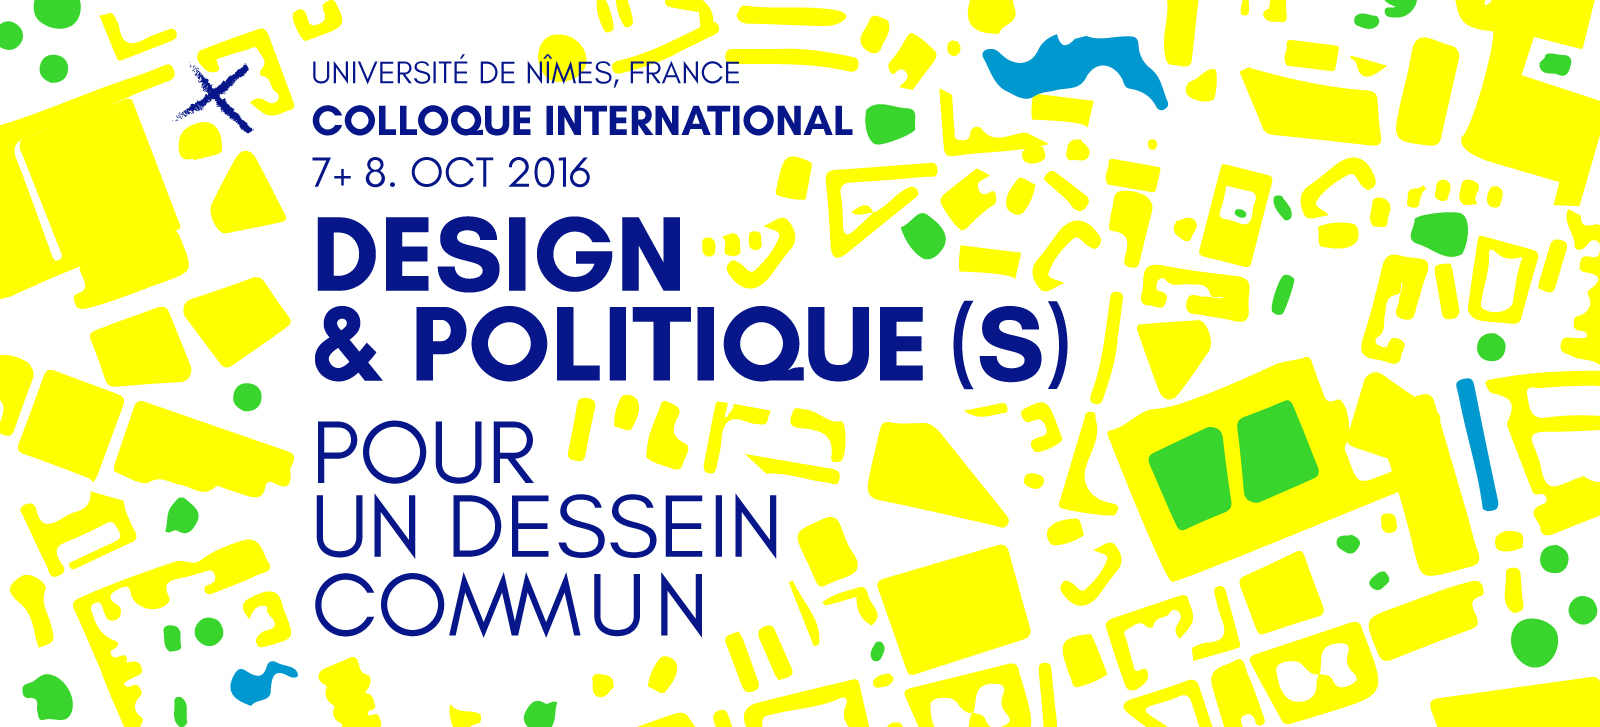 Colloque international Design et politique(s)